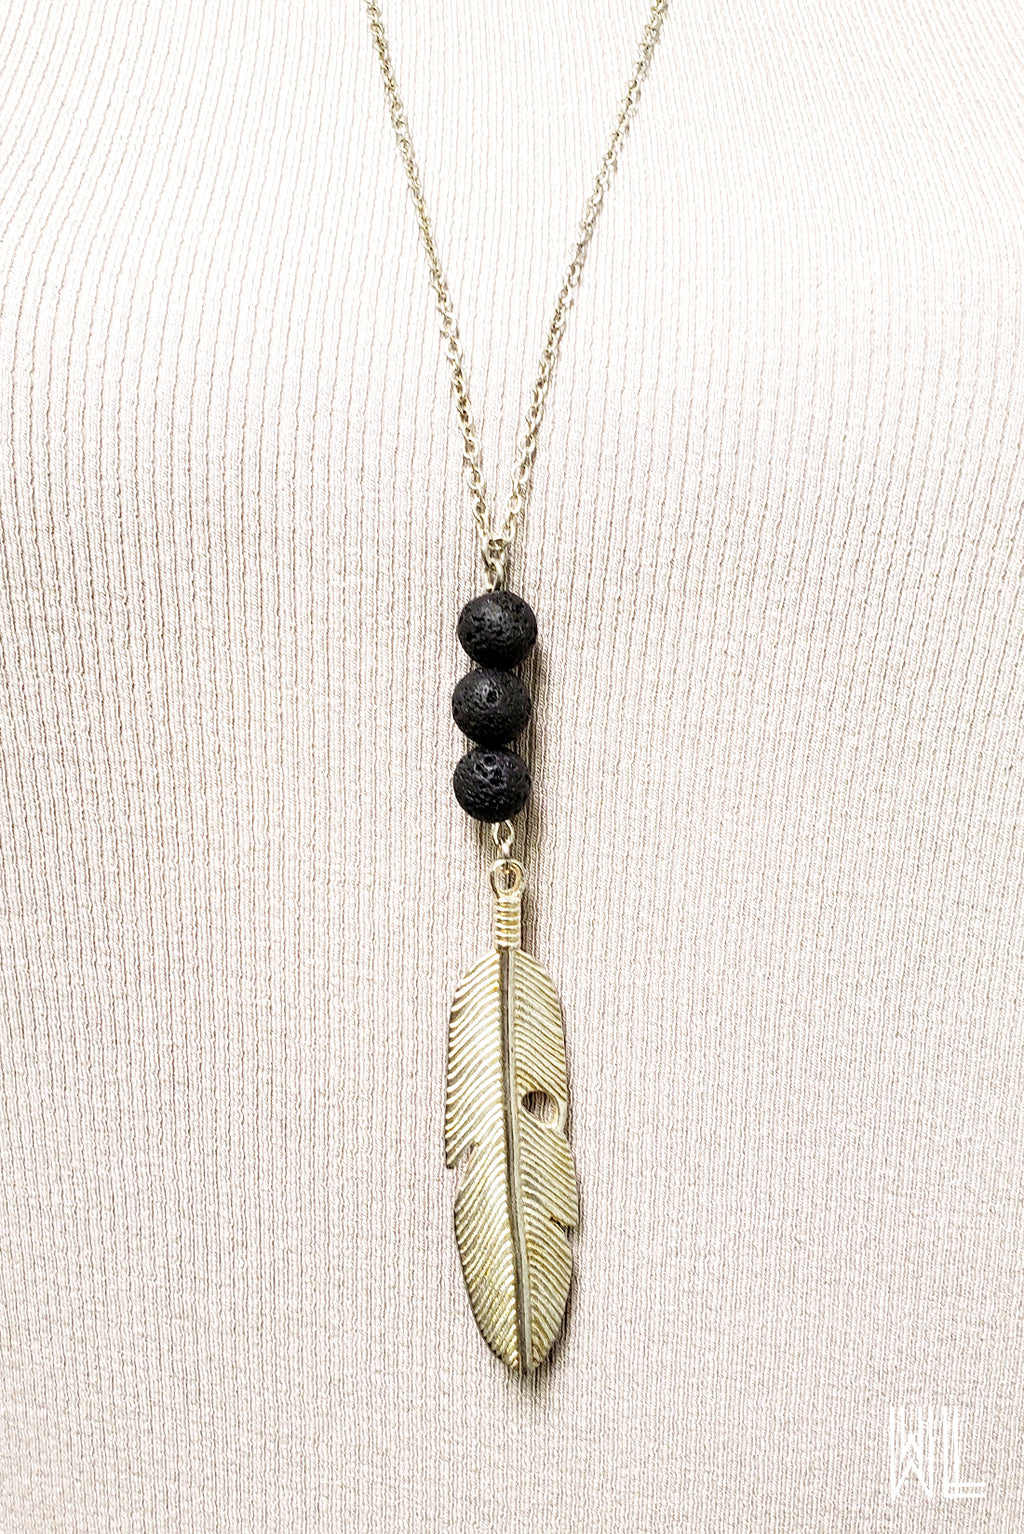 Feather Pendant + Lava Stone Necklace